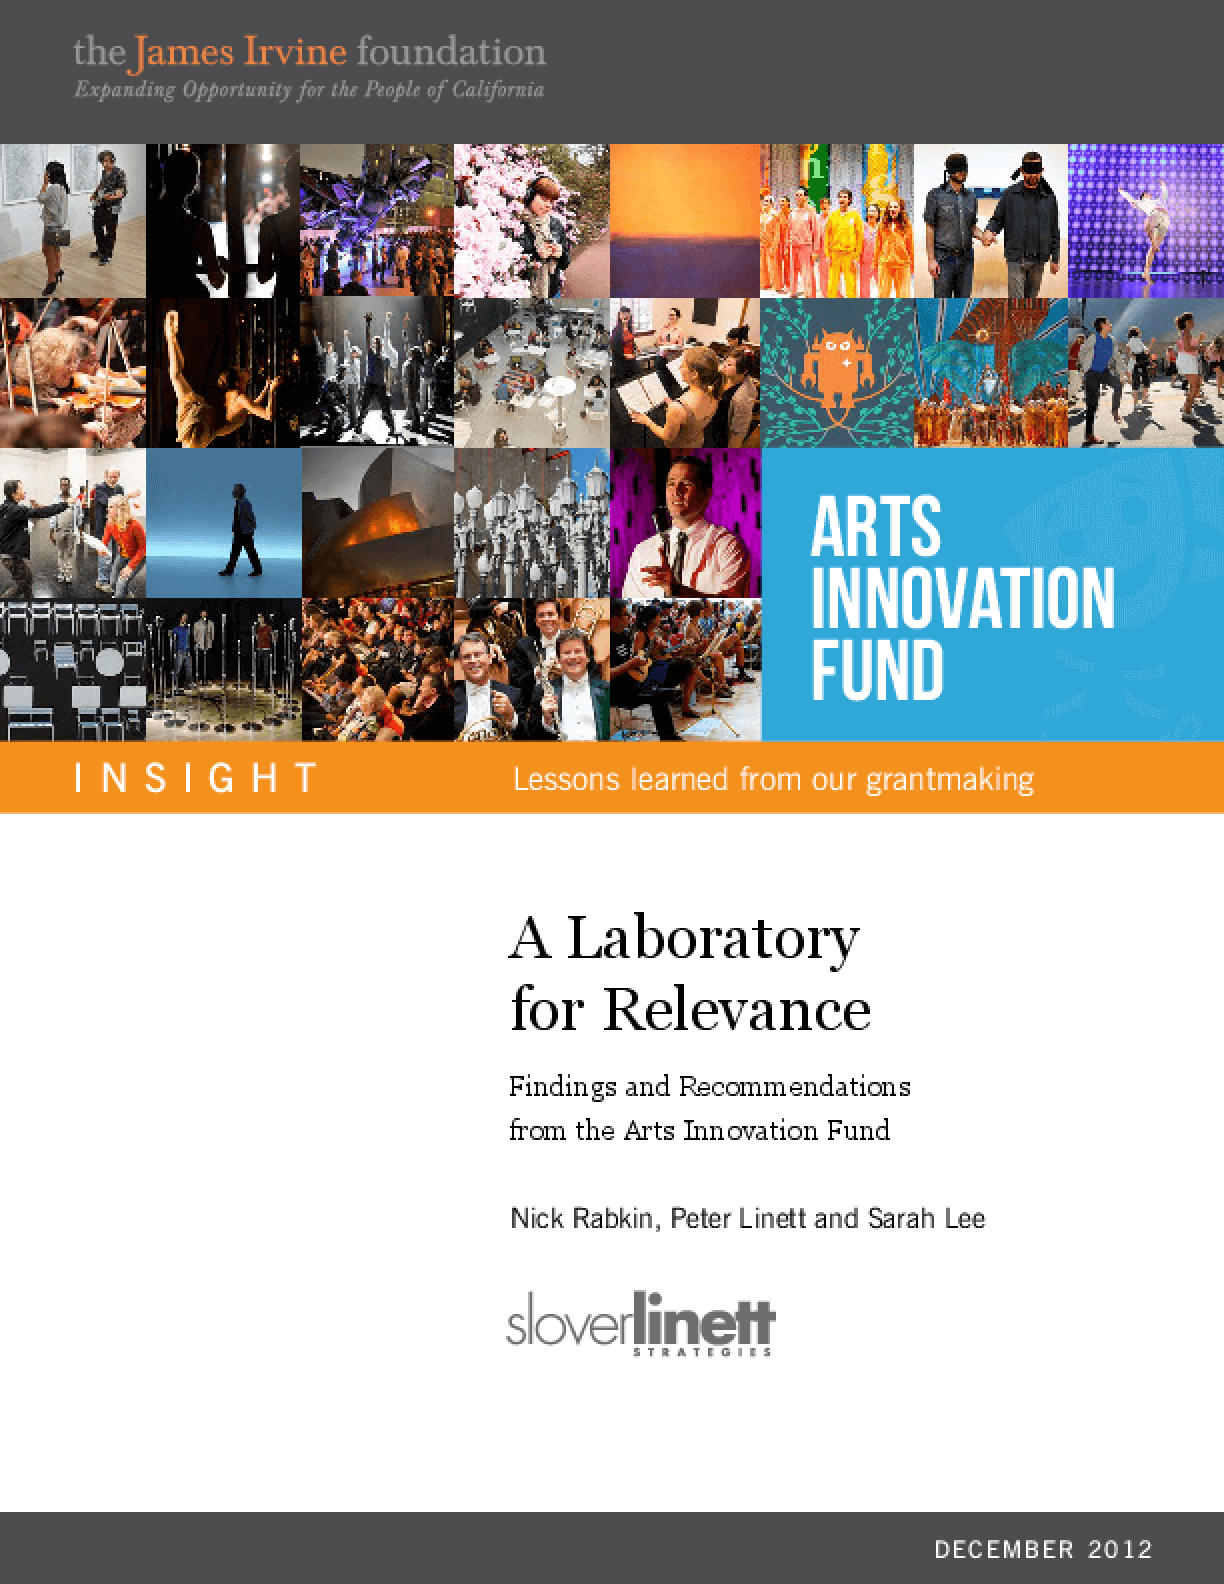 A Laboratory for Relevance: Findings and Recommendations from the Arts Innovation Fund